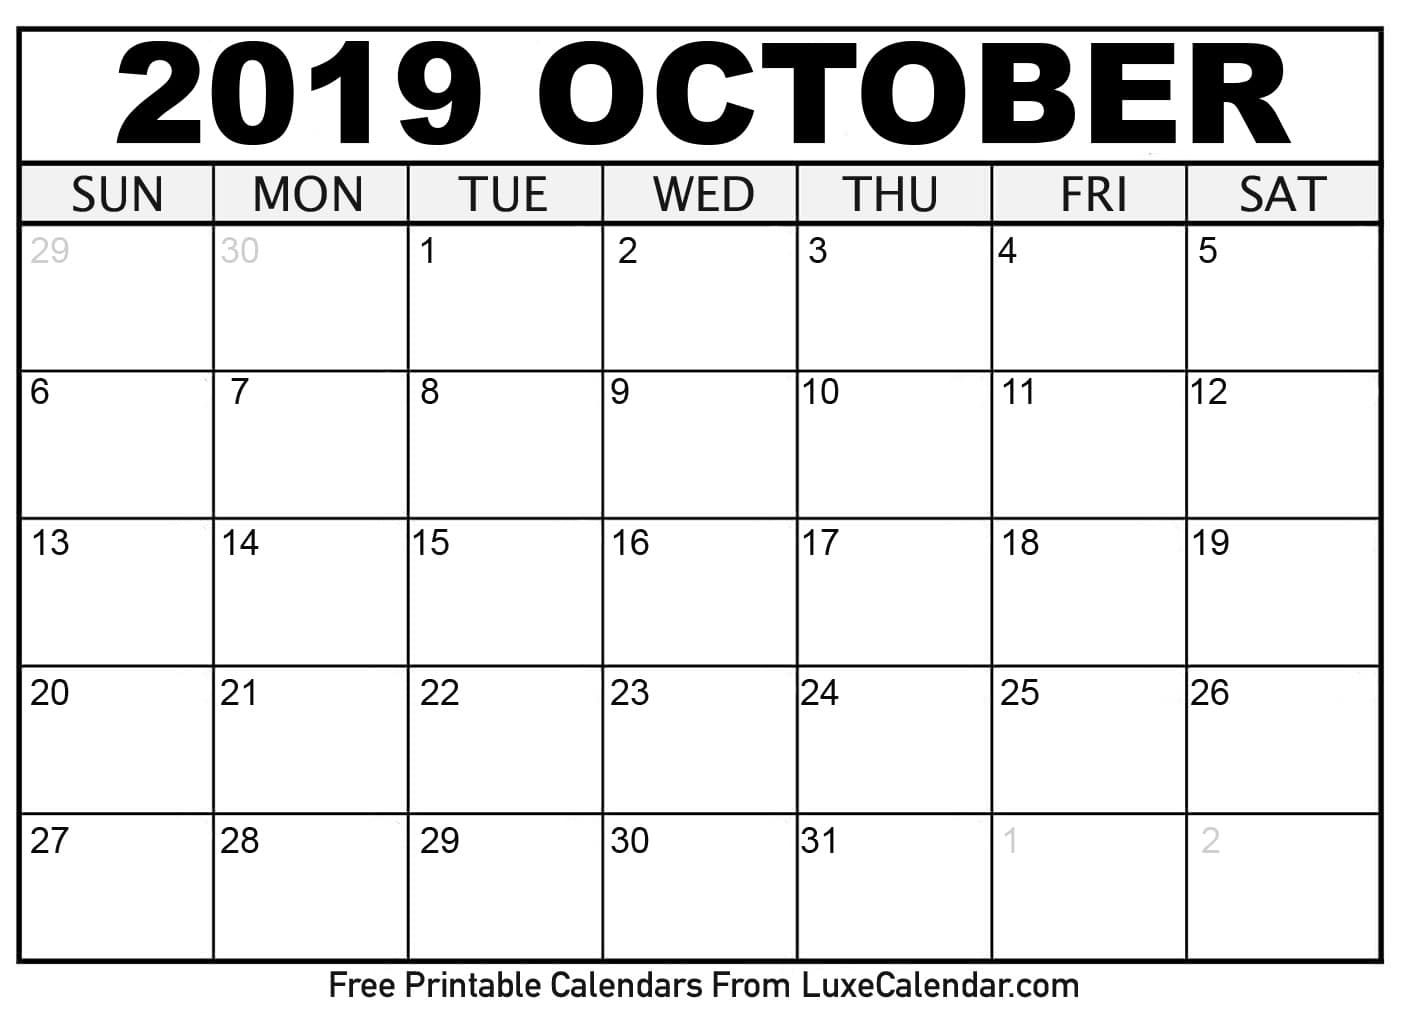 Free Printable Scary October Calendar 2019 | Calendar Format Example throughout Free Printable Scary October Calendar 2019